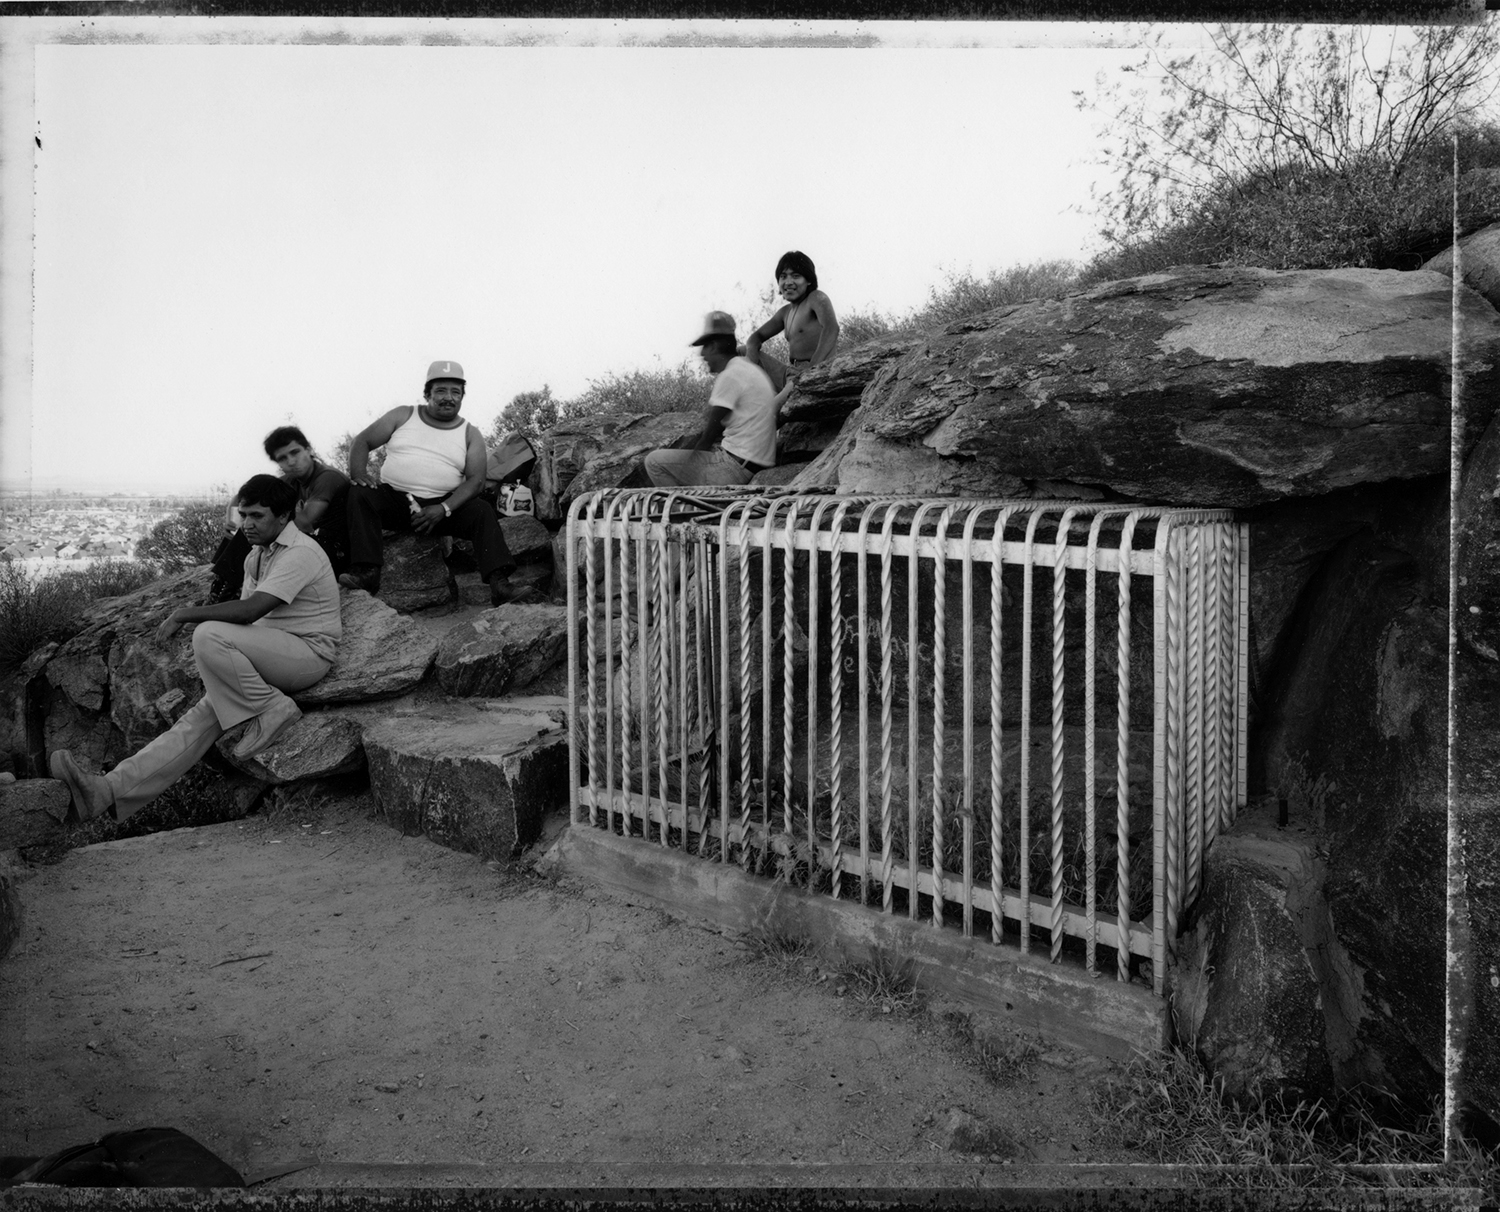 Mexican migrants drinking beer at the site of an inscription by Fr. Marcos de Niza, 1990